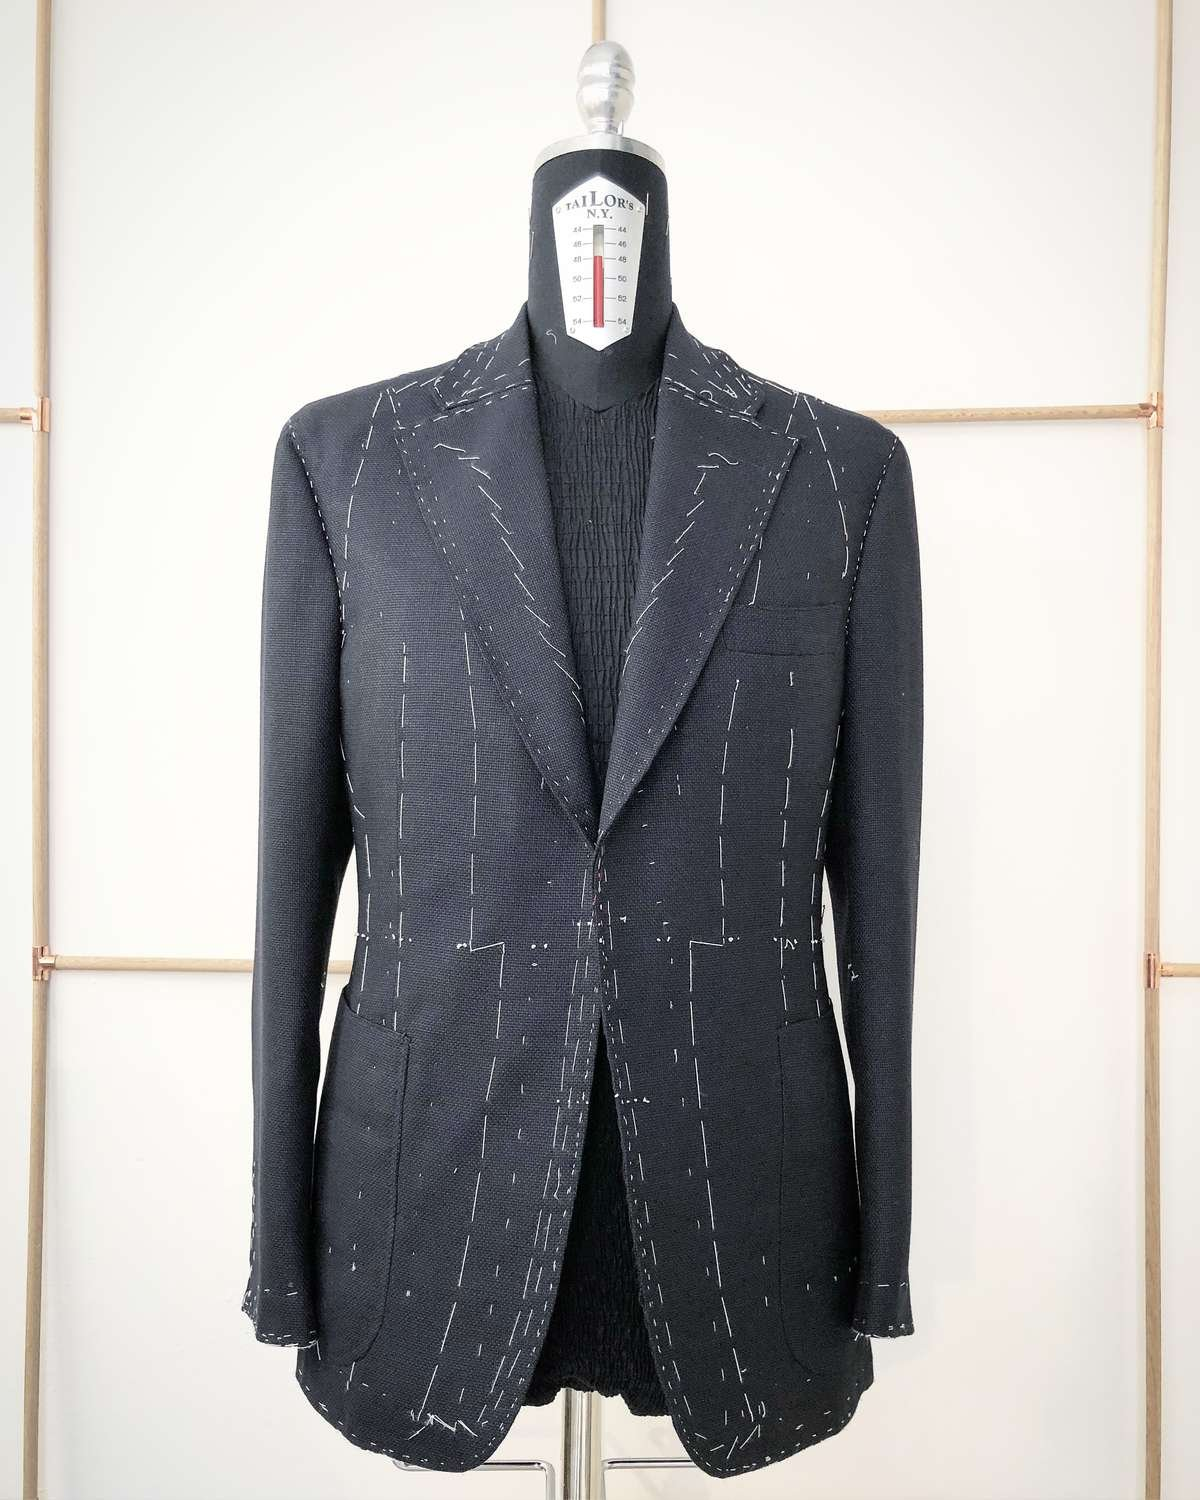 Sartoria Sciarra, bespoke jacket, forward fitting, basted fitting, hand made bespoke tailoring, luxury bespoke, luxury suit, luxury jacket, cerruti wool cashmere hopsack fabric, hand made suit, entirely hand crafted jacket, hand made bespoke, navy suit, navy jacket, bespoke navy jacket